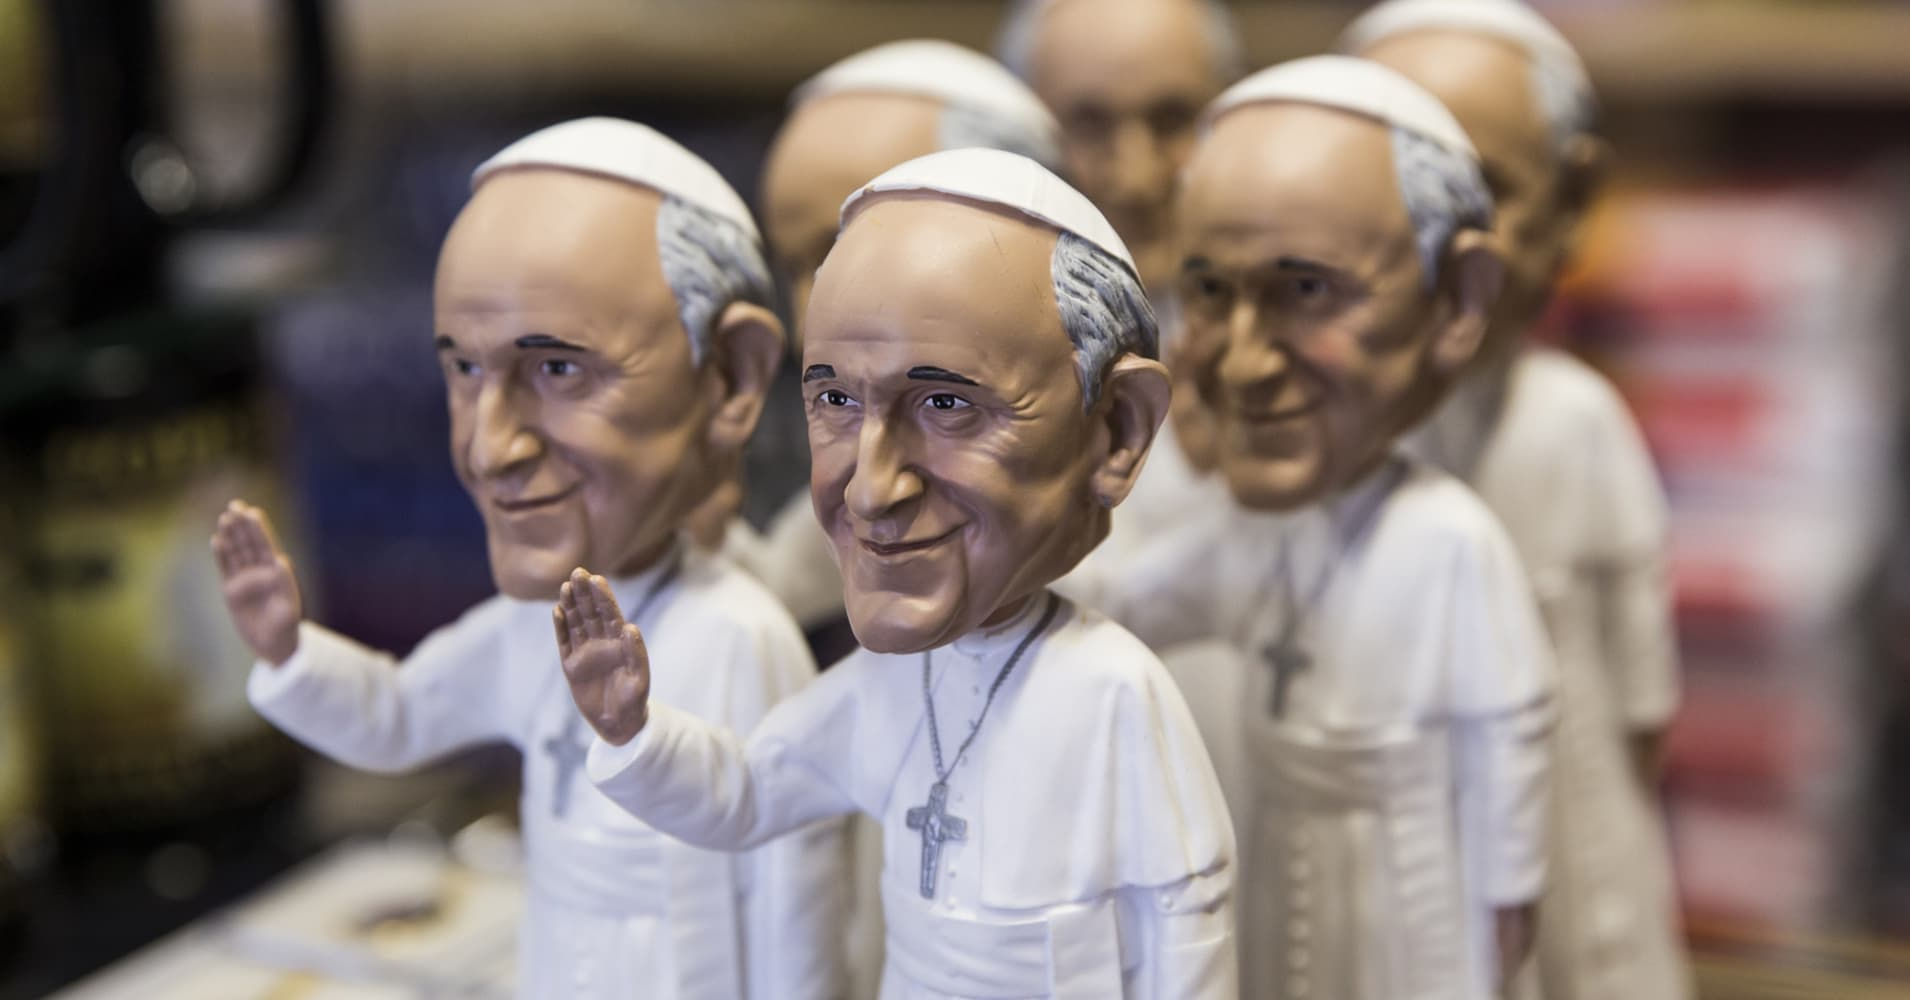 Copy this: Vatican stakes out what you can and can't do with Pope Francis' image